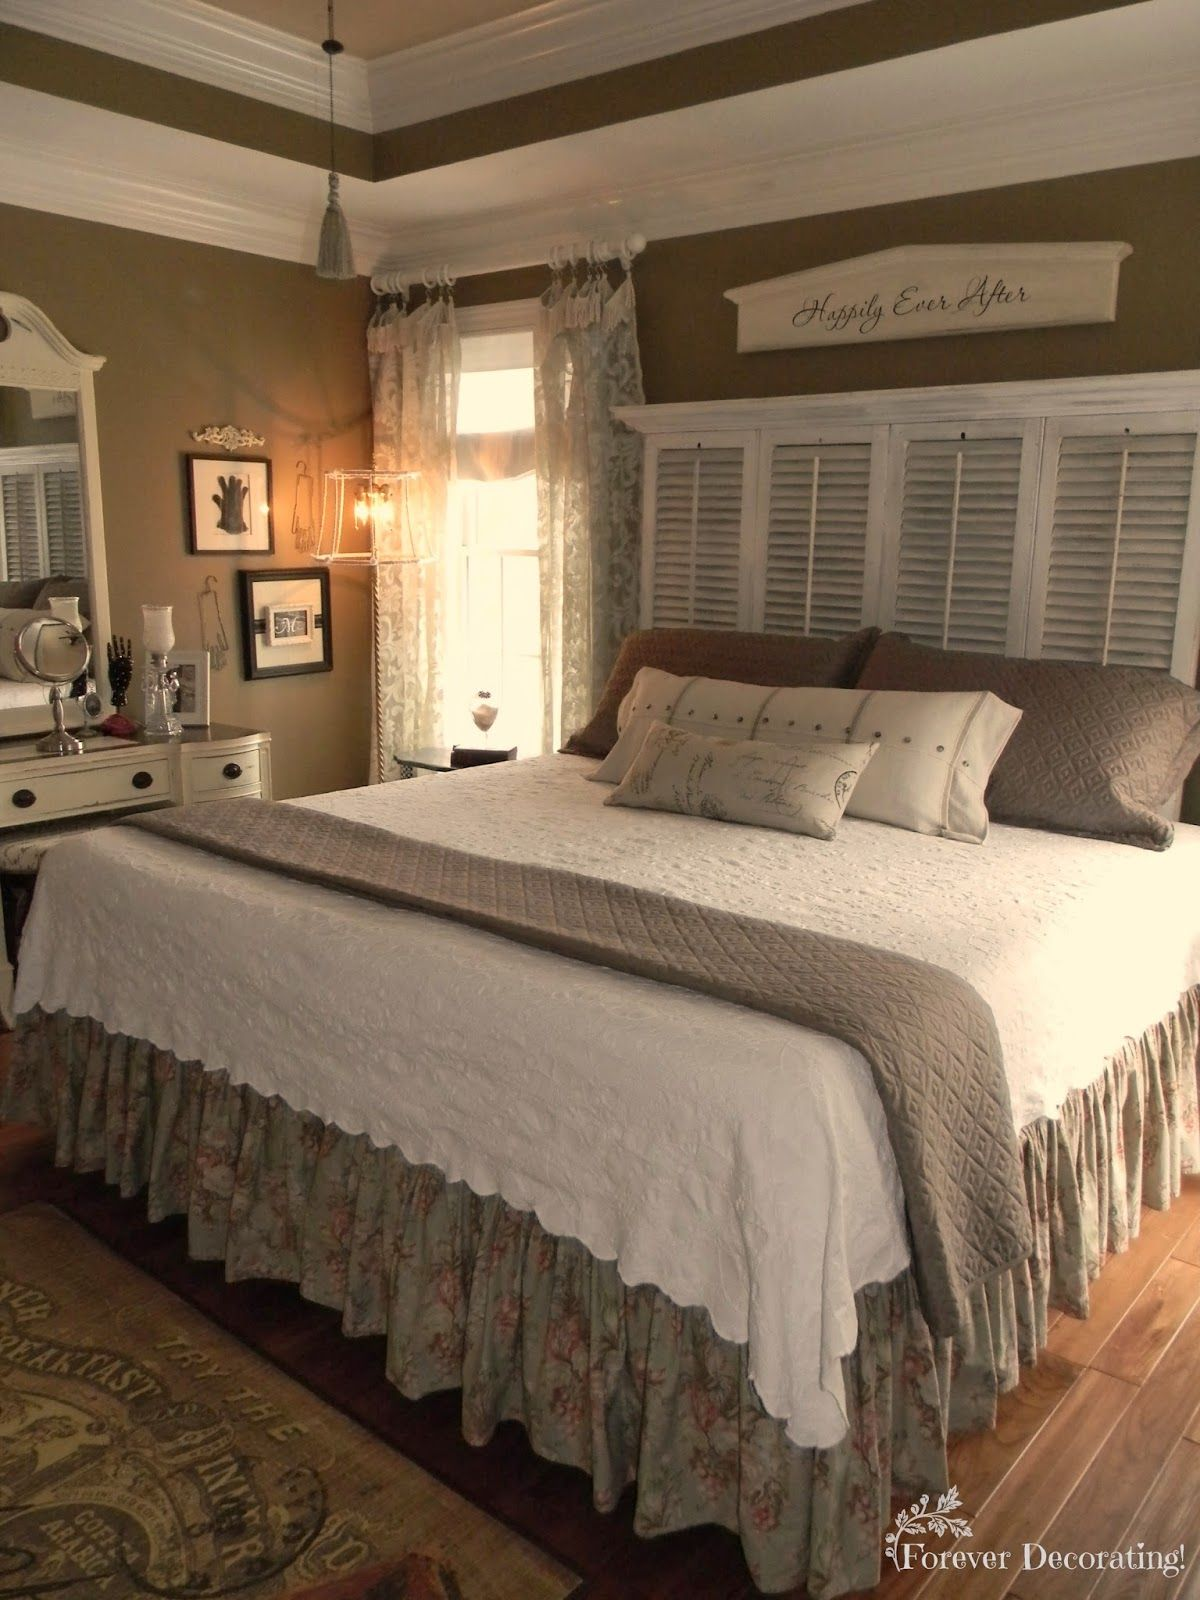 Country Bedroom Decorating Ideas on country craft ideas, country bedroom walls, country design, country bedroom ideas for couples, bedroom paint ideas, farmhouse bedroom ideas, country bedroom color ideas, country modern bedroom ideas, country style bedroom ideas, vintage bedroom ideas, bedroom design ideas, rustic bedroom ideas, small living room ideas, country bridal ideas, small bedroom ideas, country bedroom furniture, country bedroom curtains, country bedding, country western bedroom ideas, country home bedroom ideas,